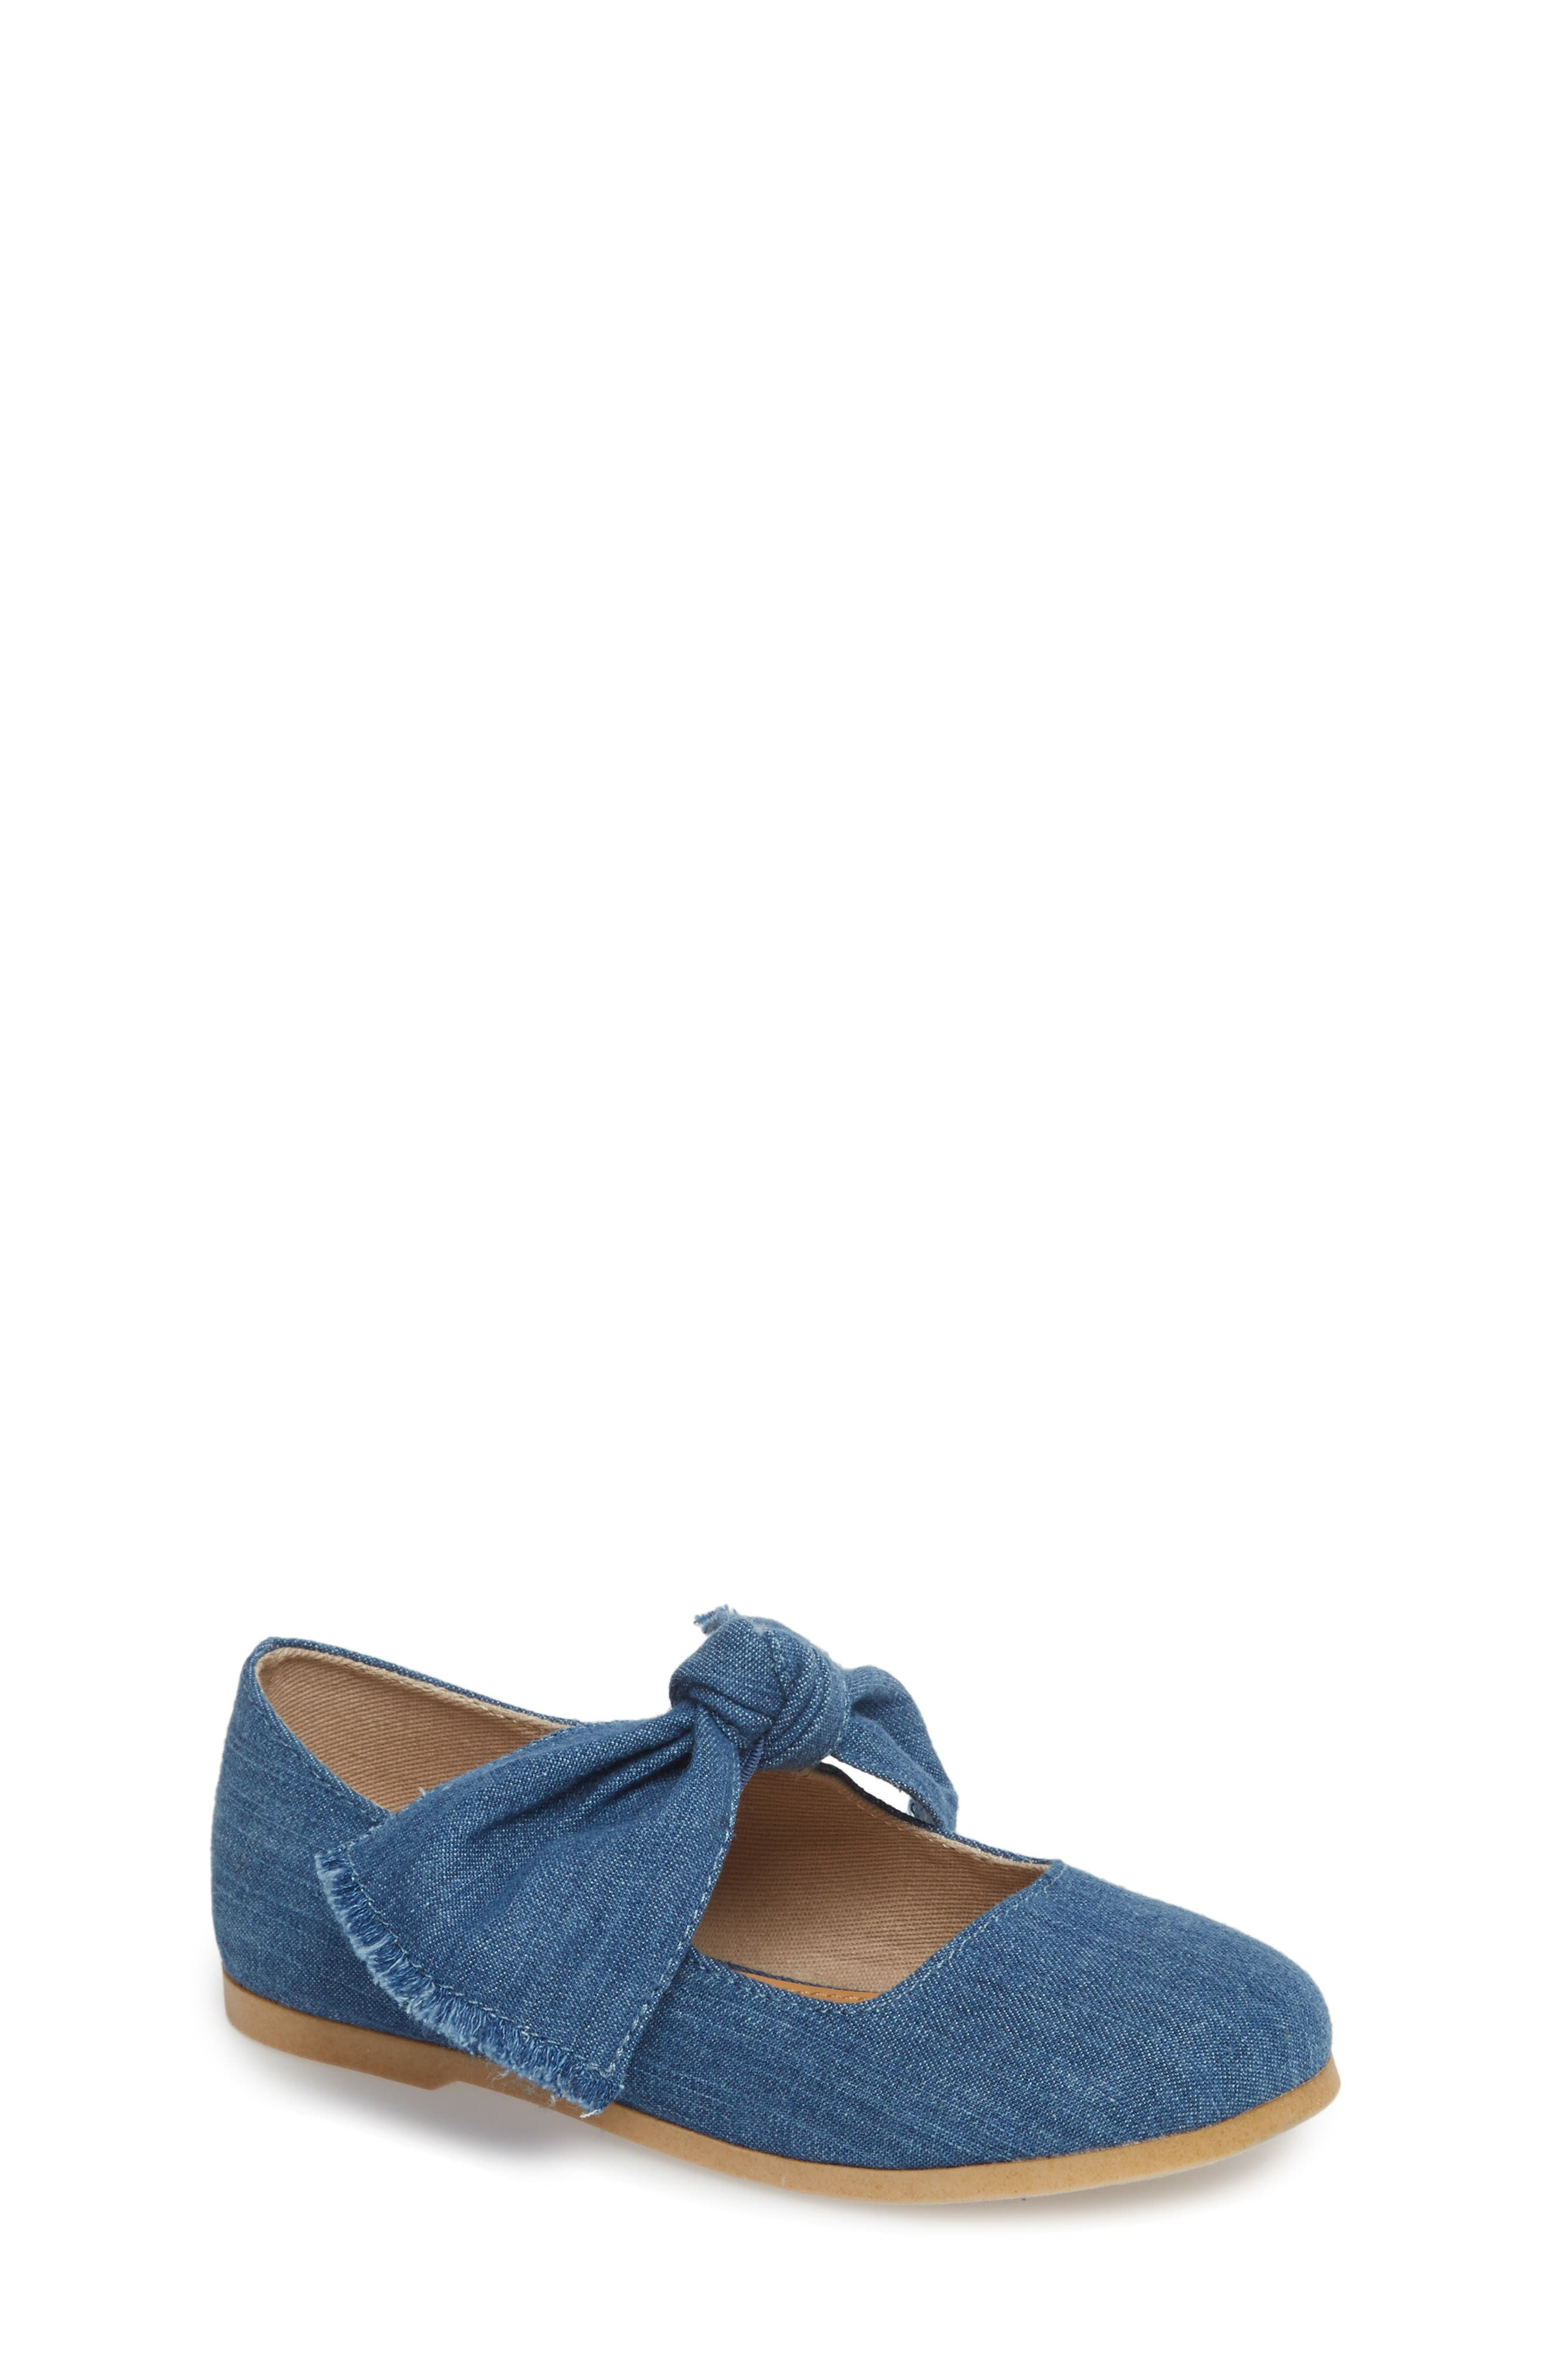 Helina Bow Mary Jane Flat,                             Main thumbnail 1, color,                             Chambray Fabric